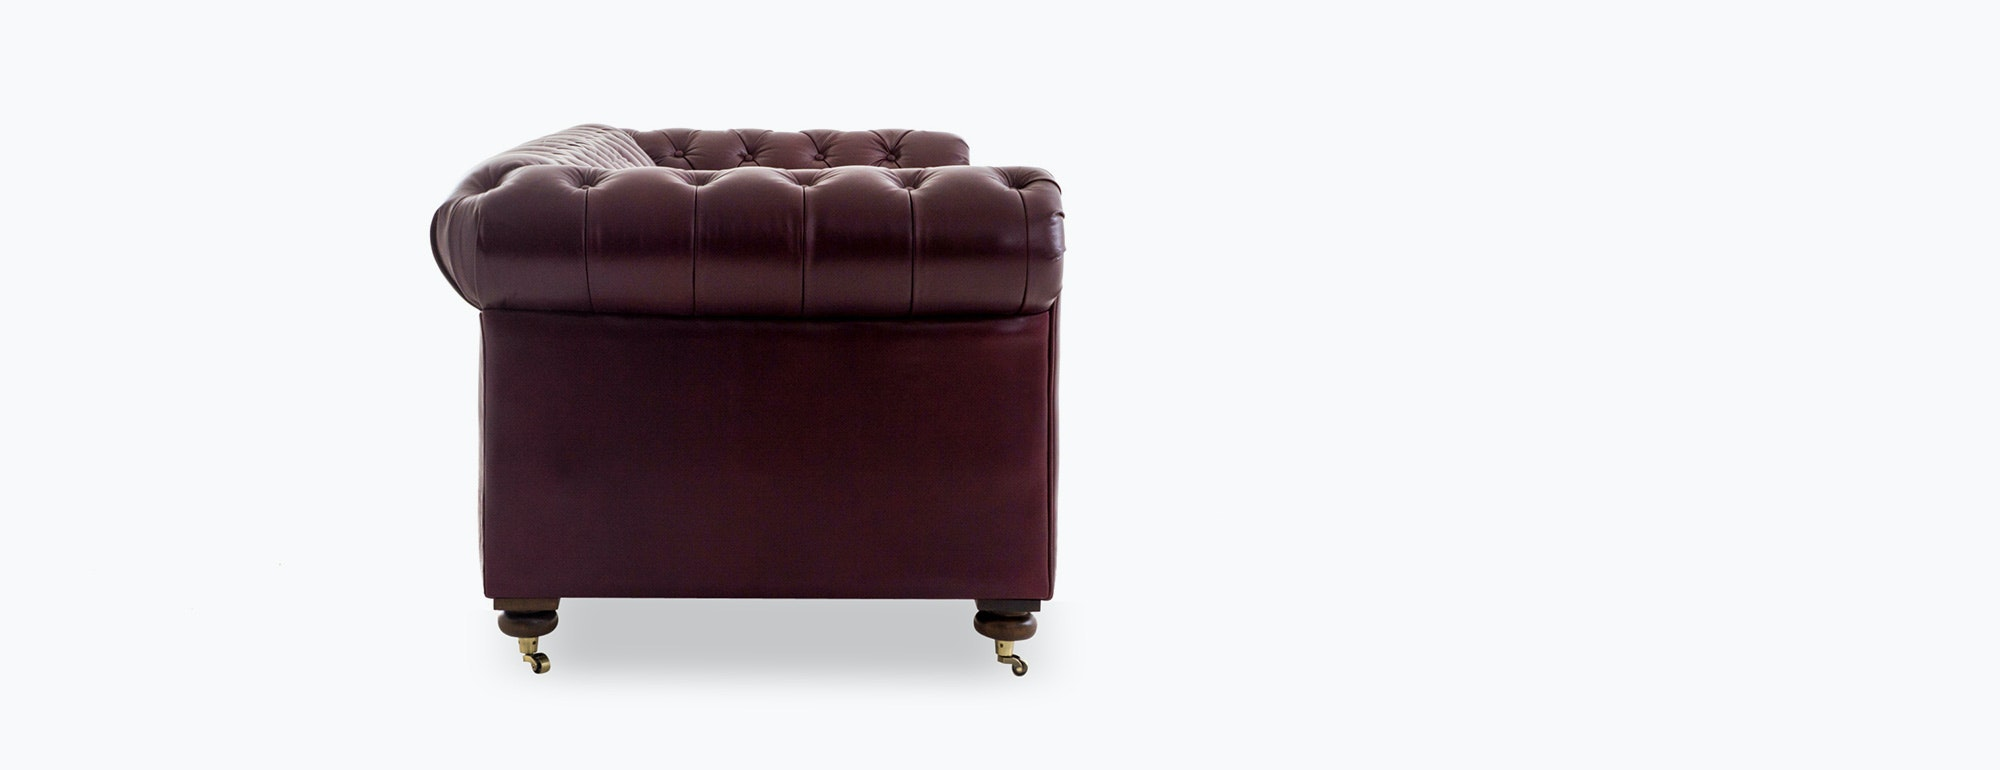 plum leather sofa corner lounge with bed and recliner theo joybird